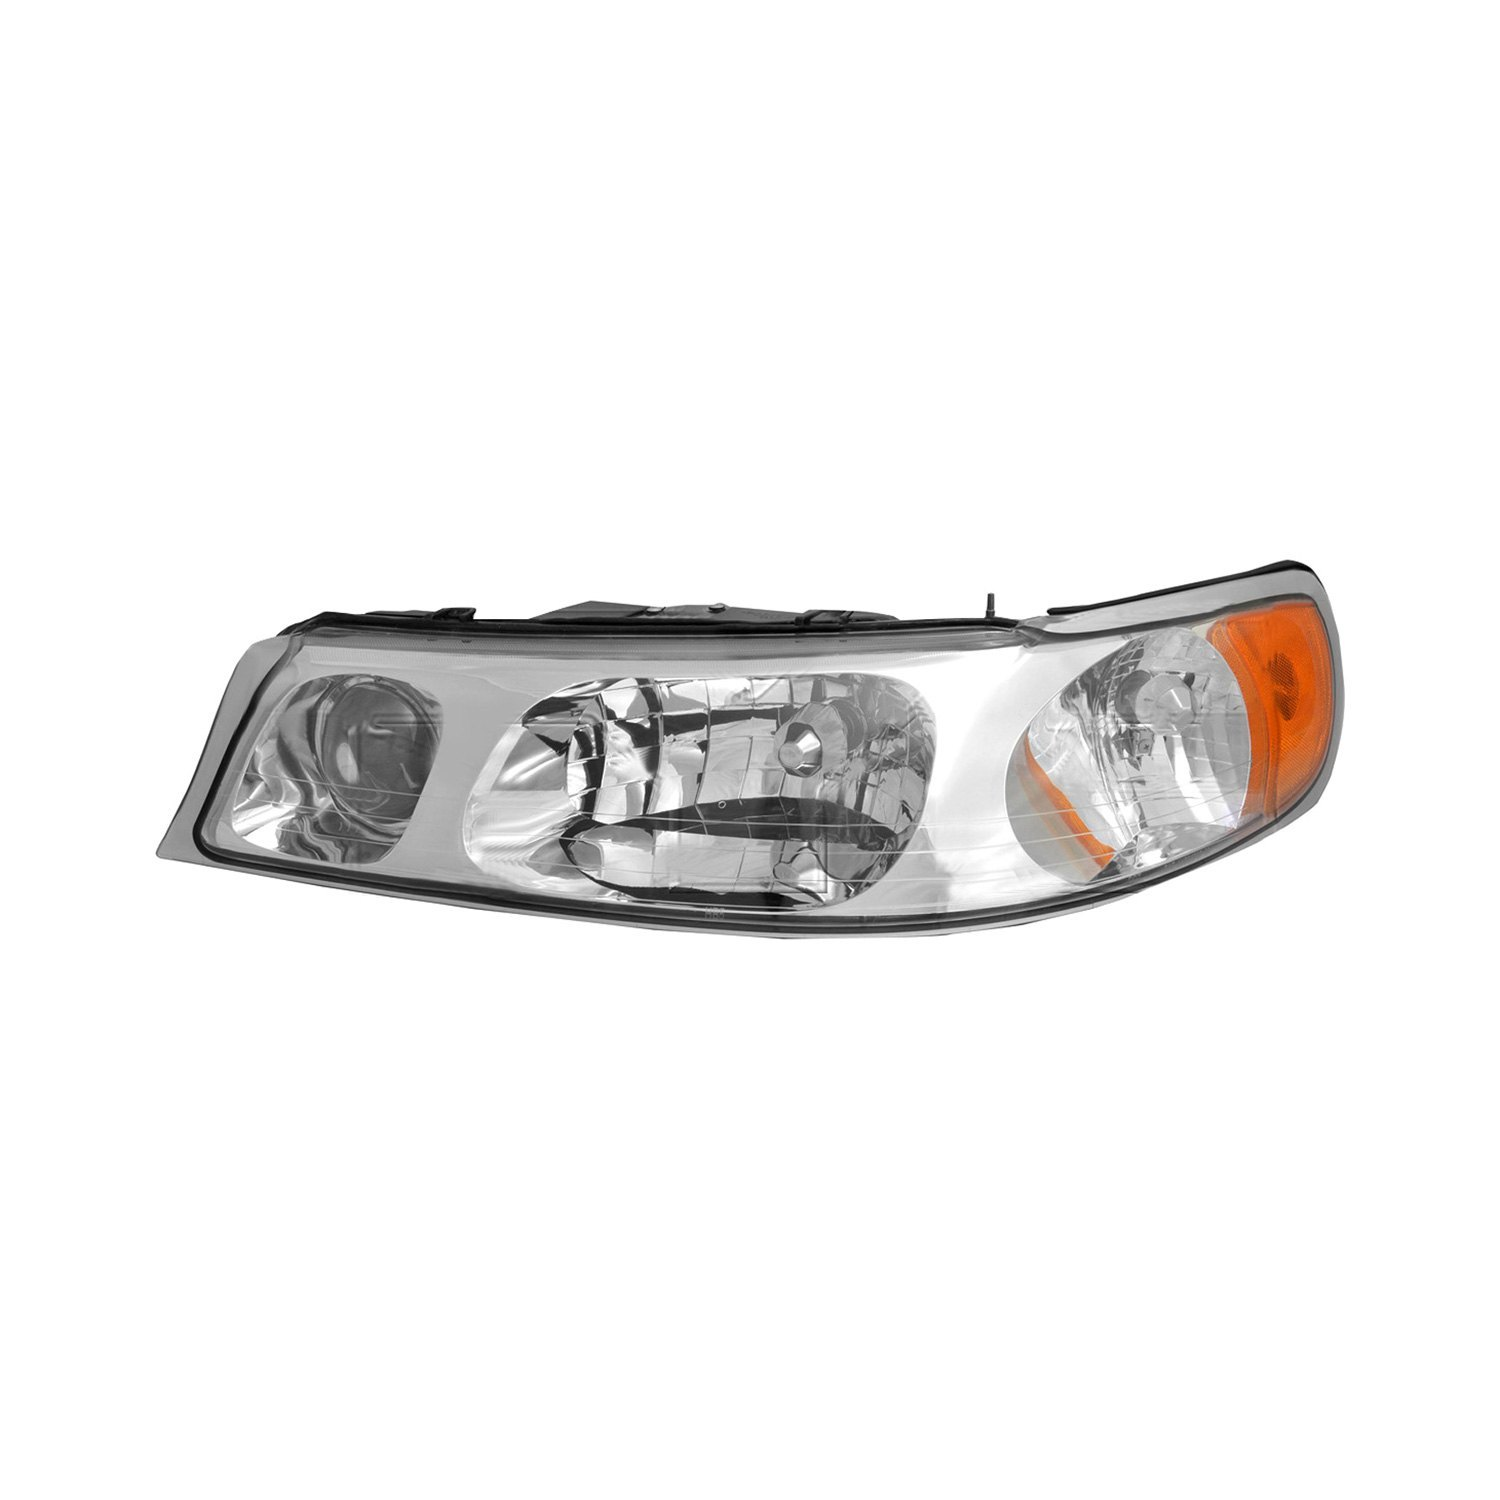 tyc lincoln town car 1998 2002 replacement headlight. Black Bedroom Furniture Sets. Home Design Ideas